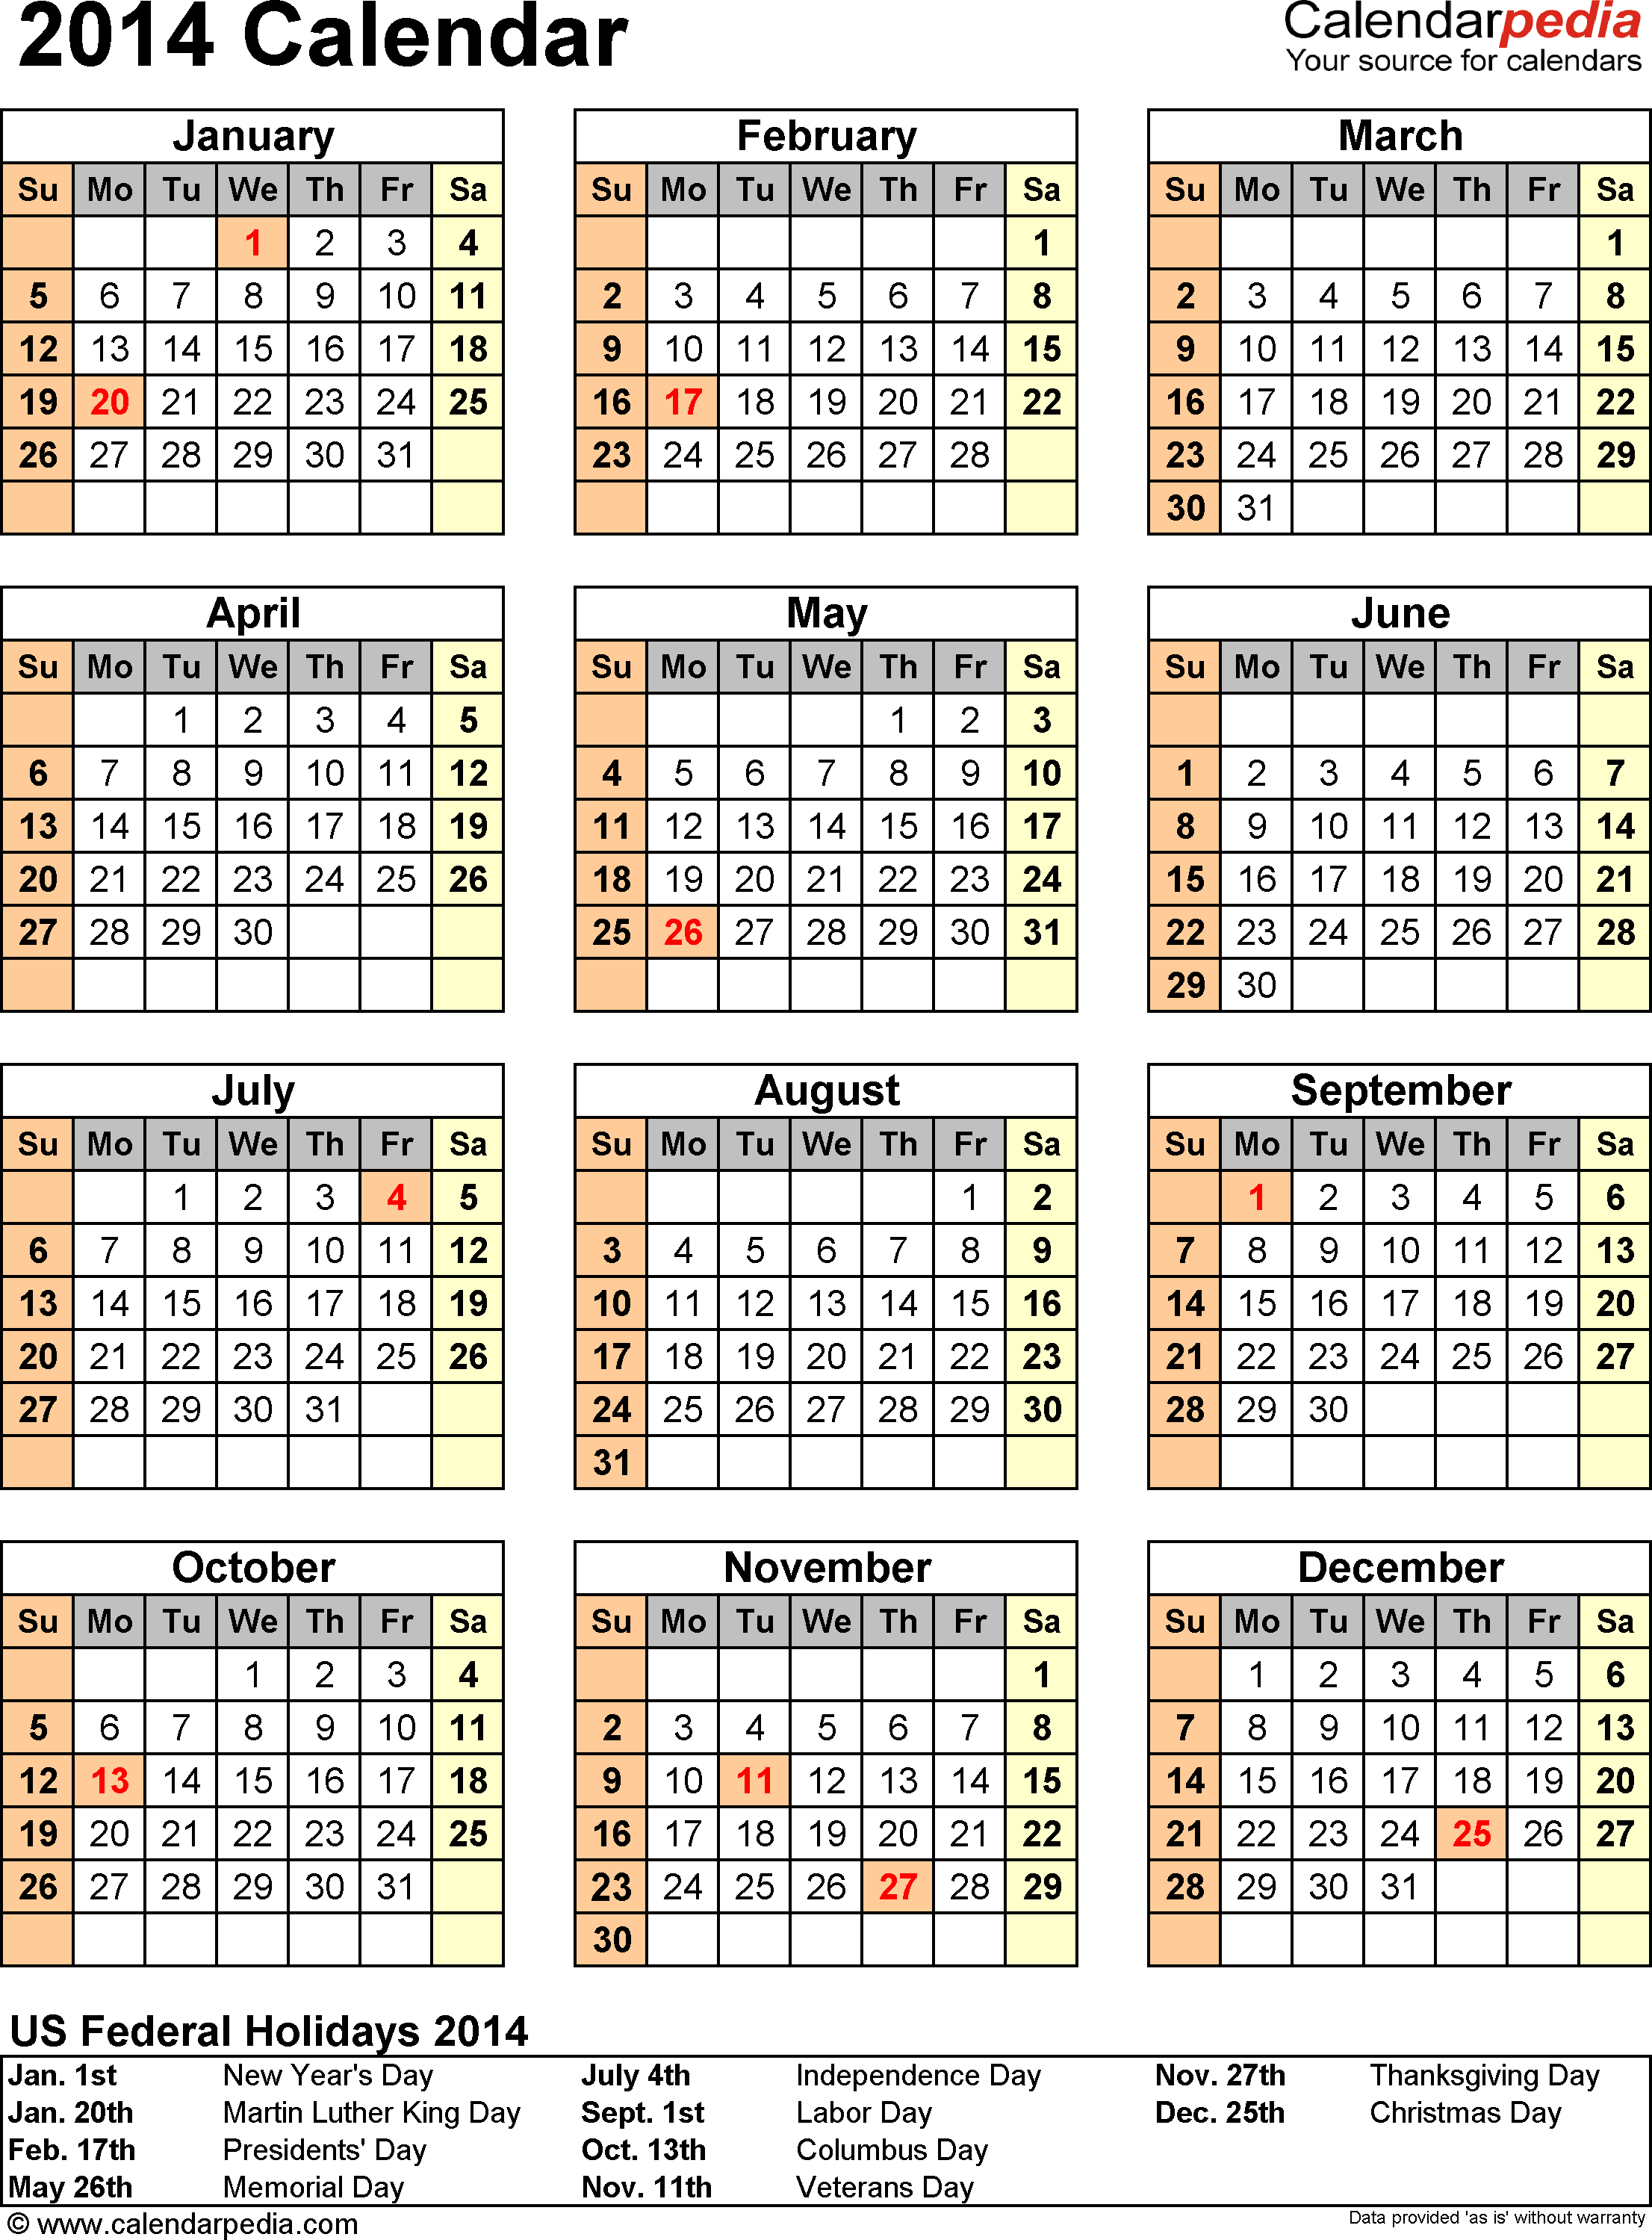 Template 13: 2014 Calendar for PDF, 1 page, portrait orientation